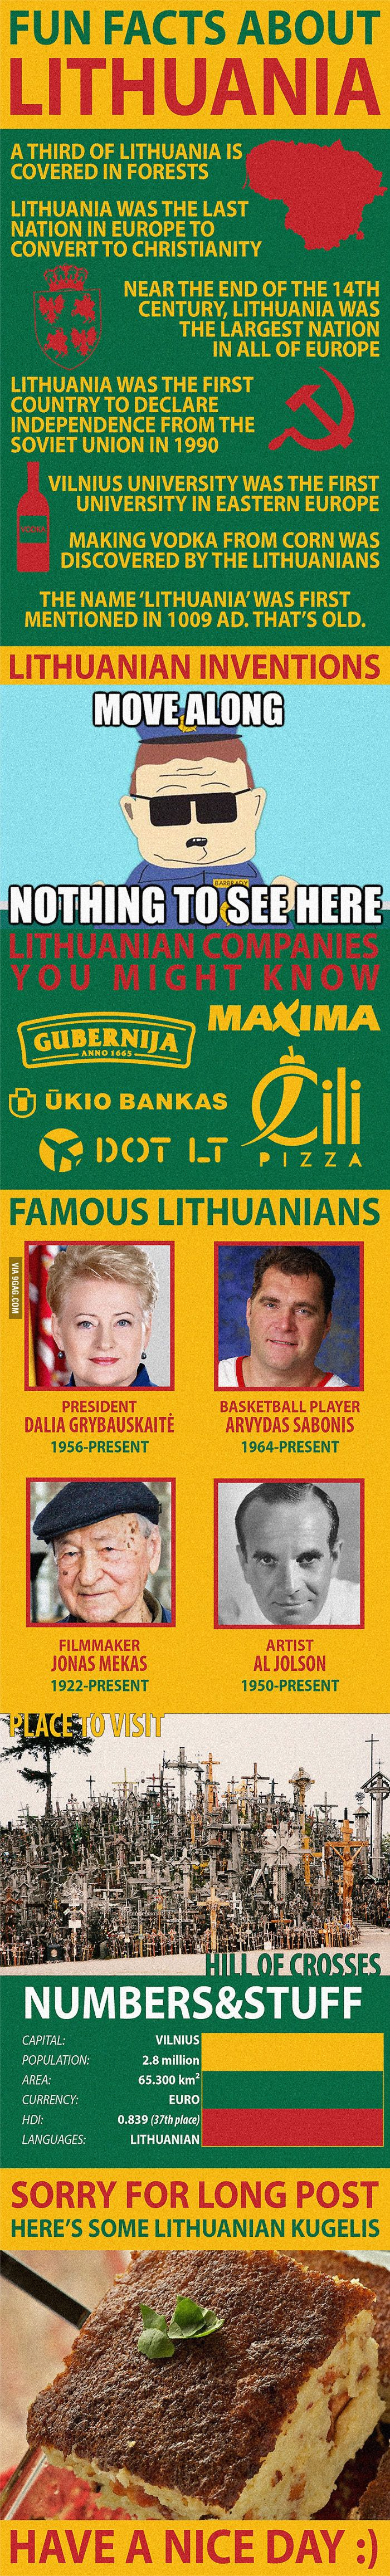 Fun Facts about Lithuania